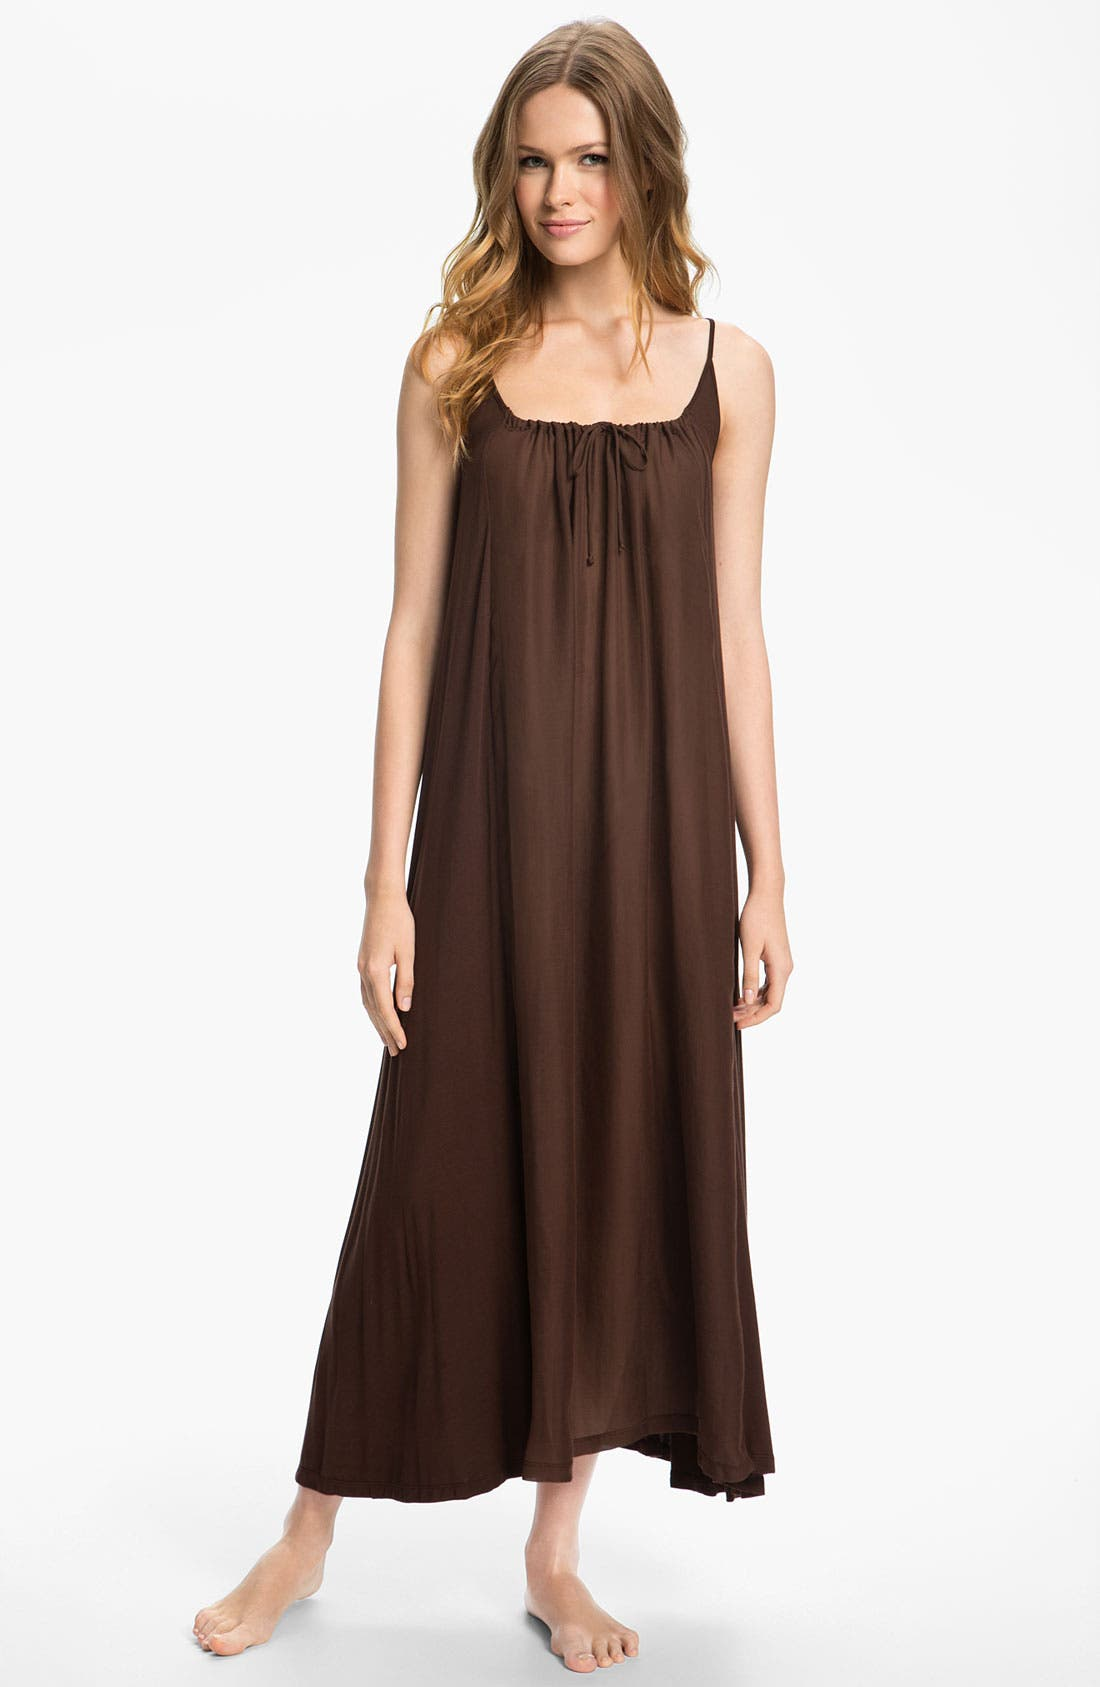 Alternate Image 1 Selected - Midnight by Carole Hochman 'Made for Each Other' Nightgown